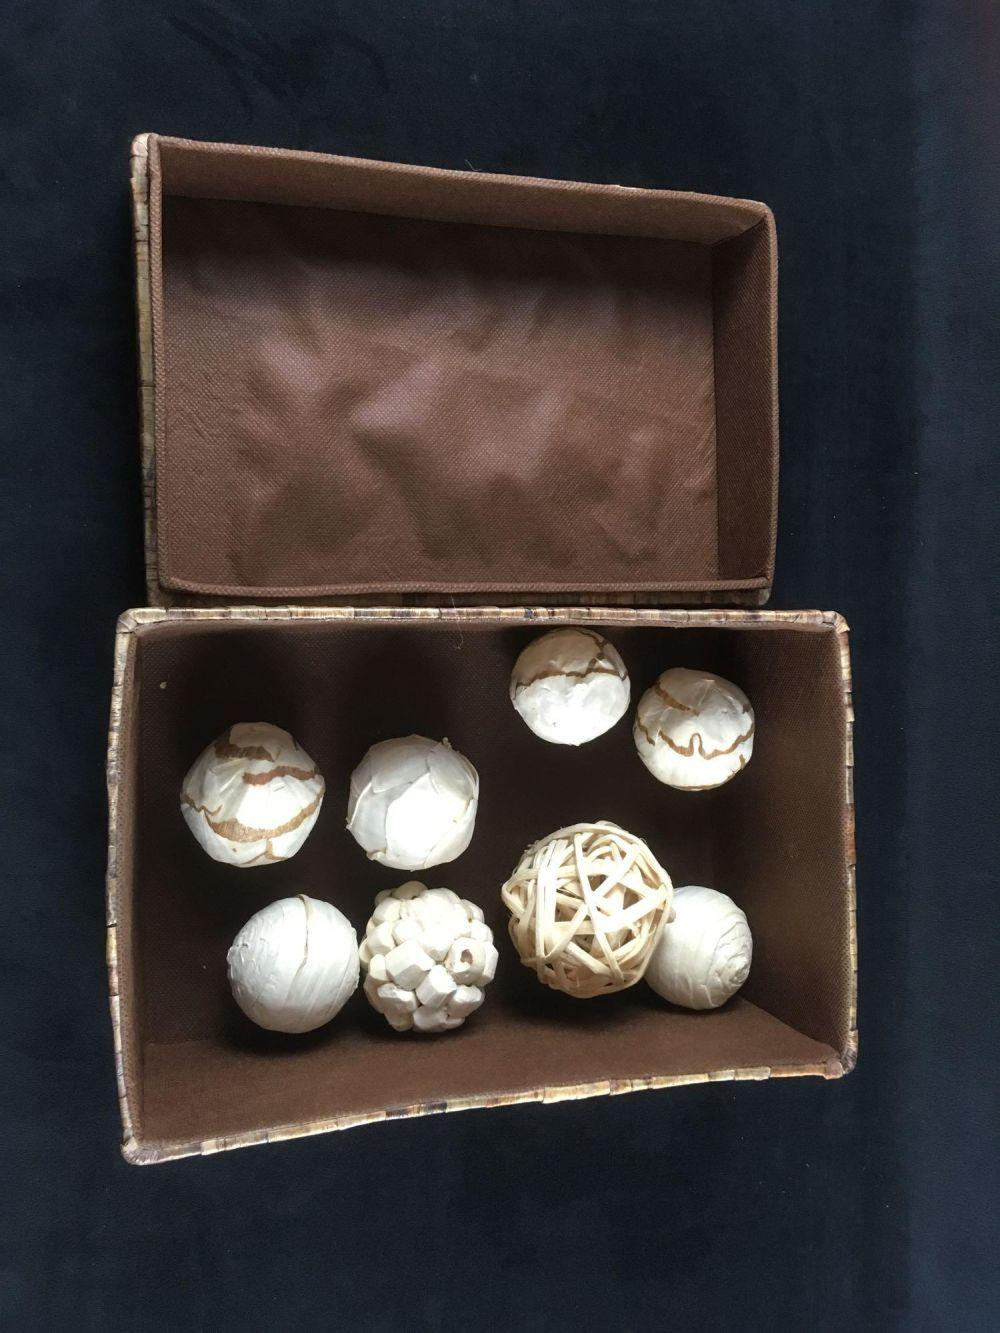 Lot 800: Collection of 8 Round Art Objects in Artistically Treated Box